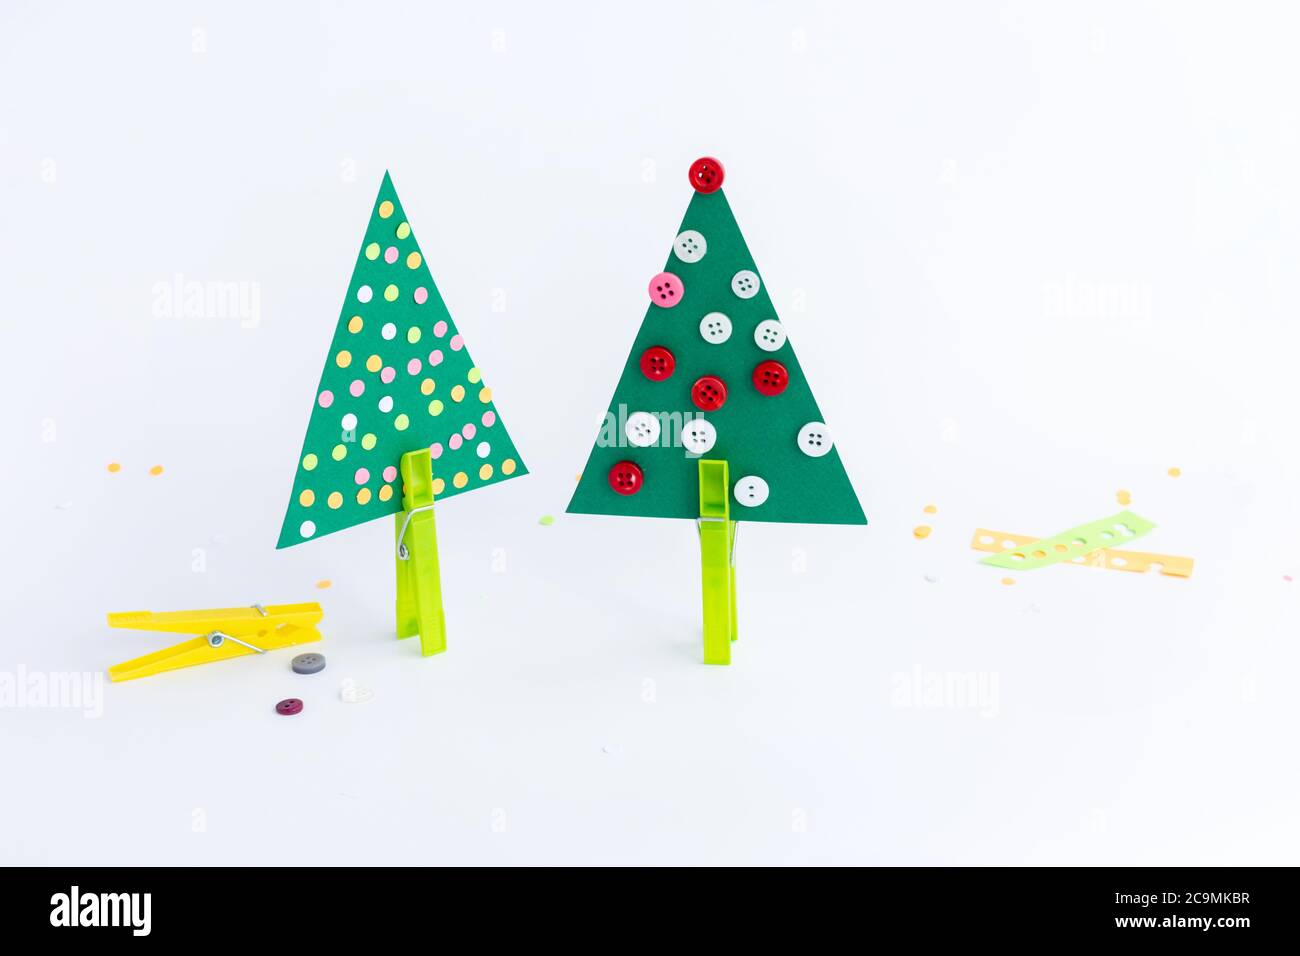 Christmas Tree Paper Craft For Kids Easy Creative Projects For Young Kids Stock Photo Alamy